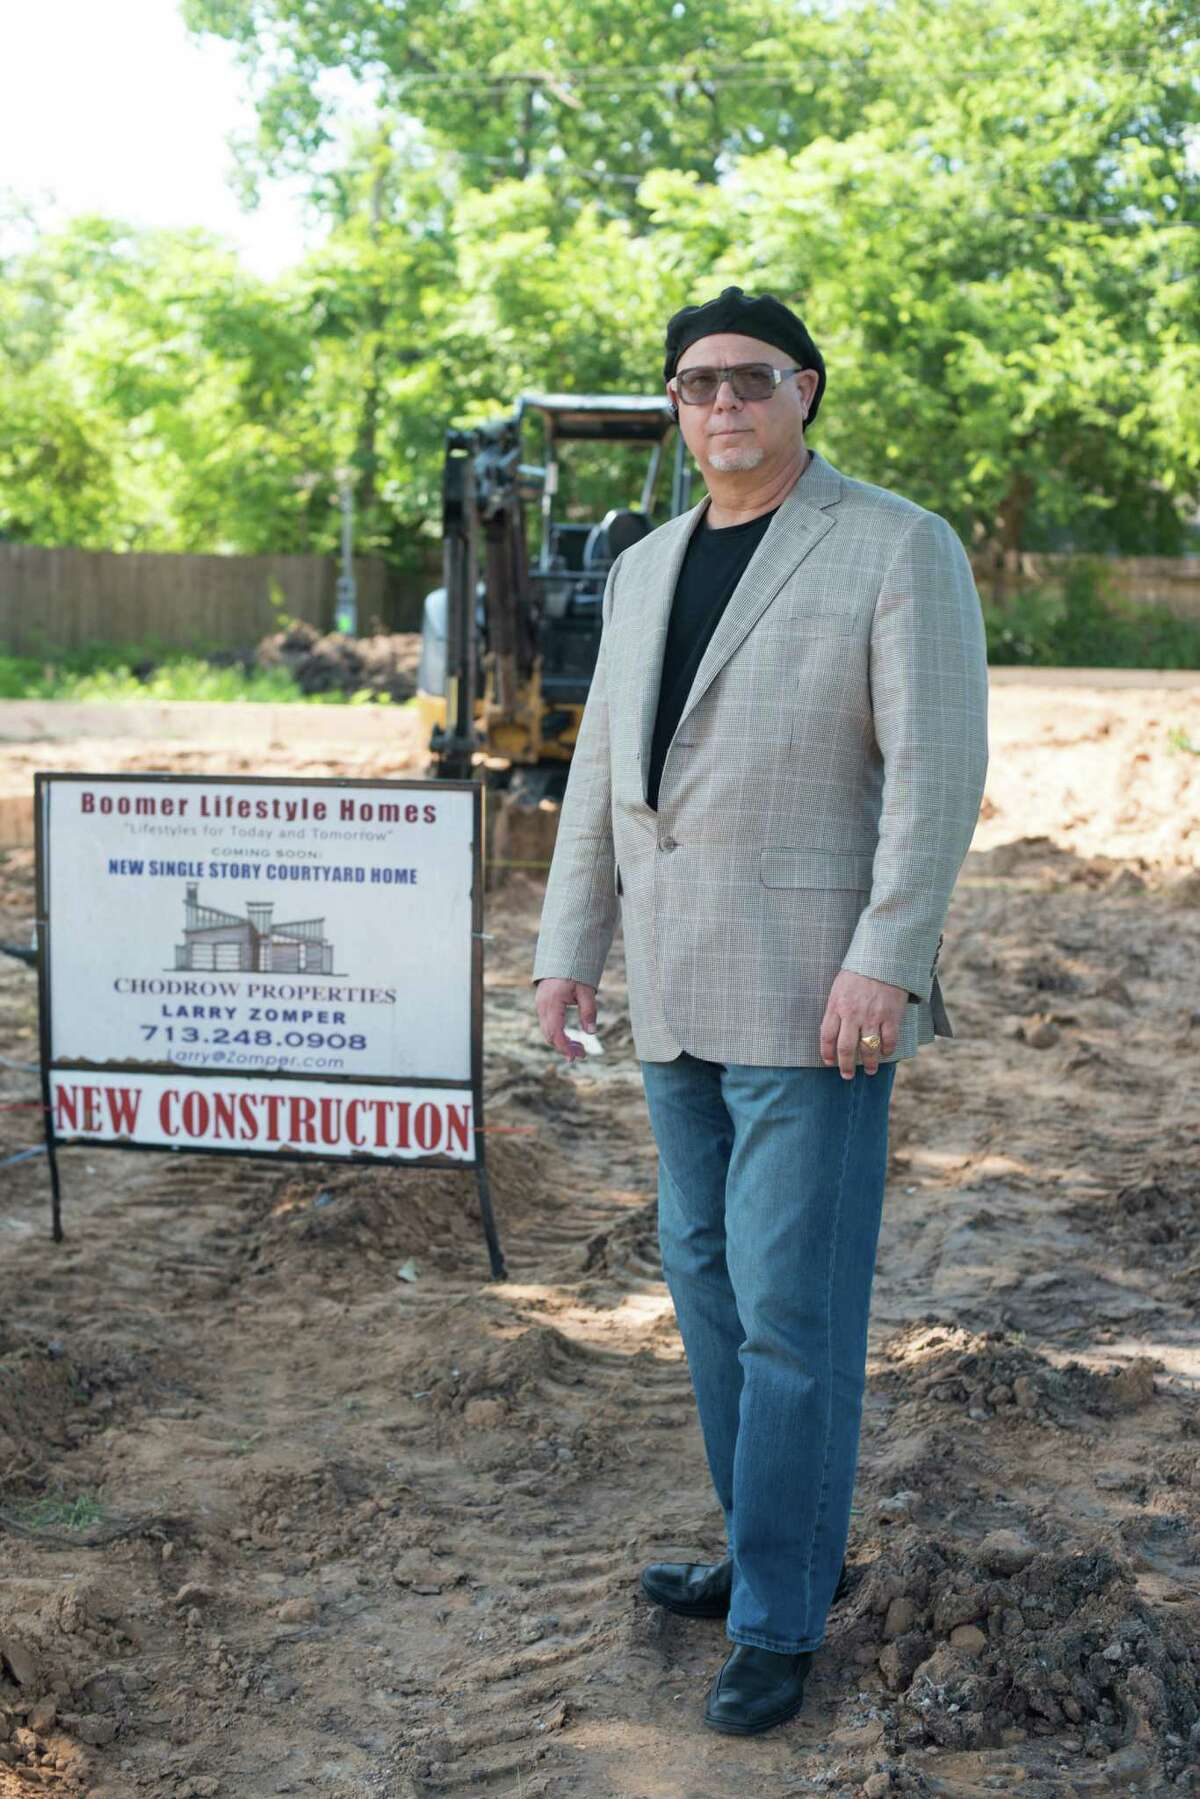 Larry Zomper of Boomer Lifestyle Homes on June 3, 2015 in Houston, TX